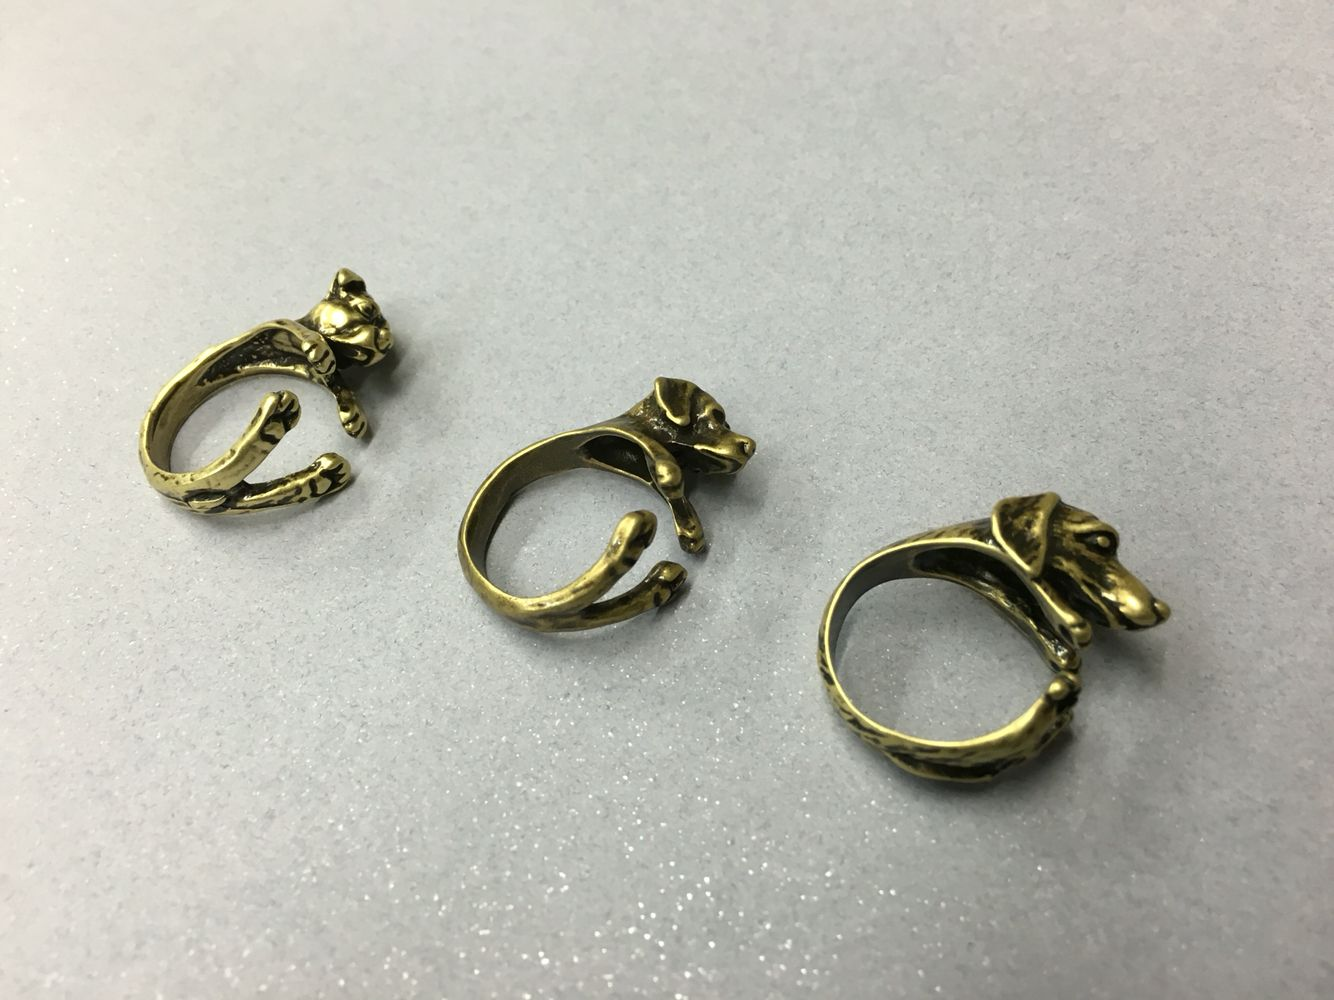 Pit Bull, Labrador Retriever & Dachshund Rings are now available in ...